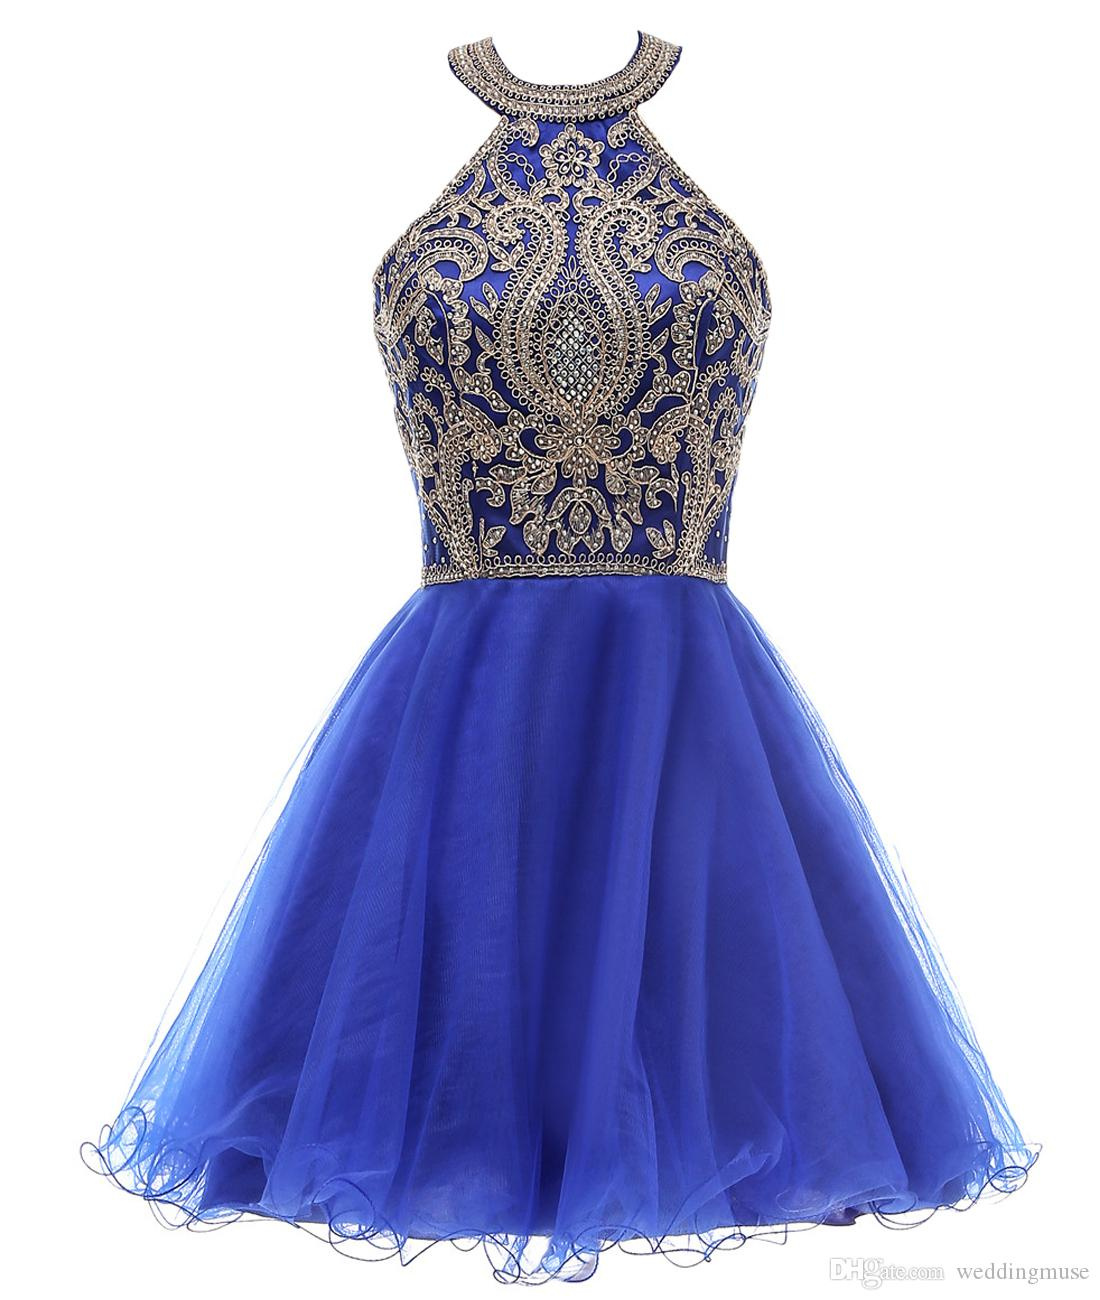 eb984d3aac7a44 Royal Blue Prom Dresses Halter Short Homecoming Sequins Beaded A Line Girls  Graduation Prom Cocktail Party Special Occasion Dresses Cute Homecoming  Dresses ...